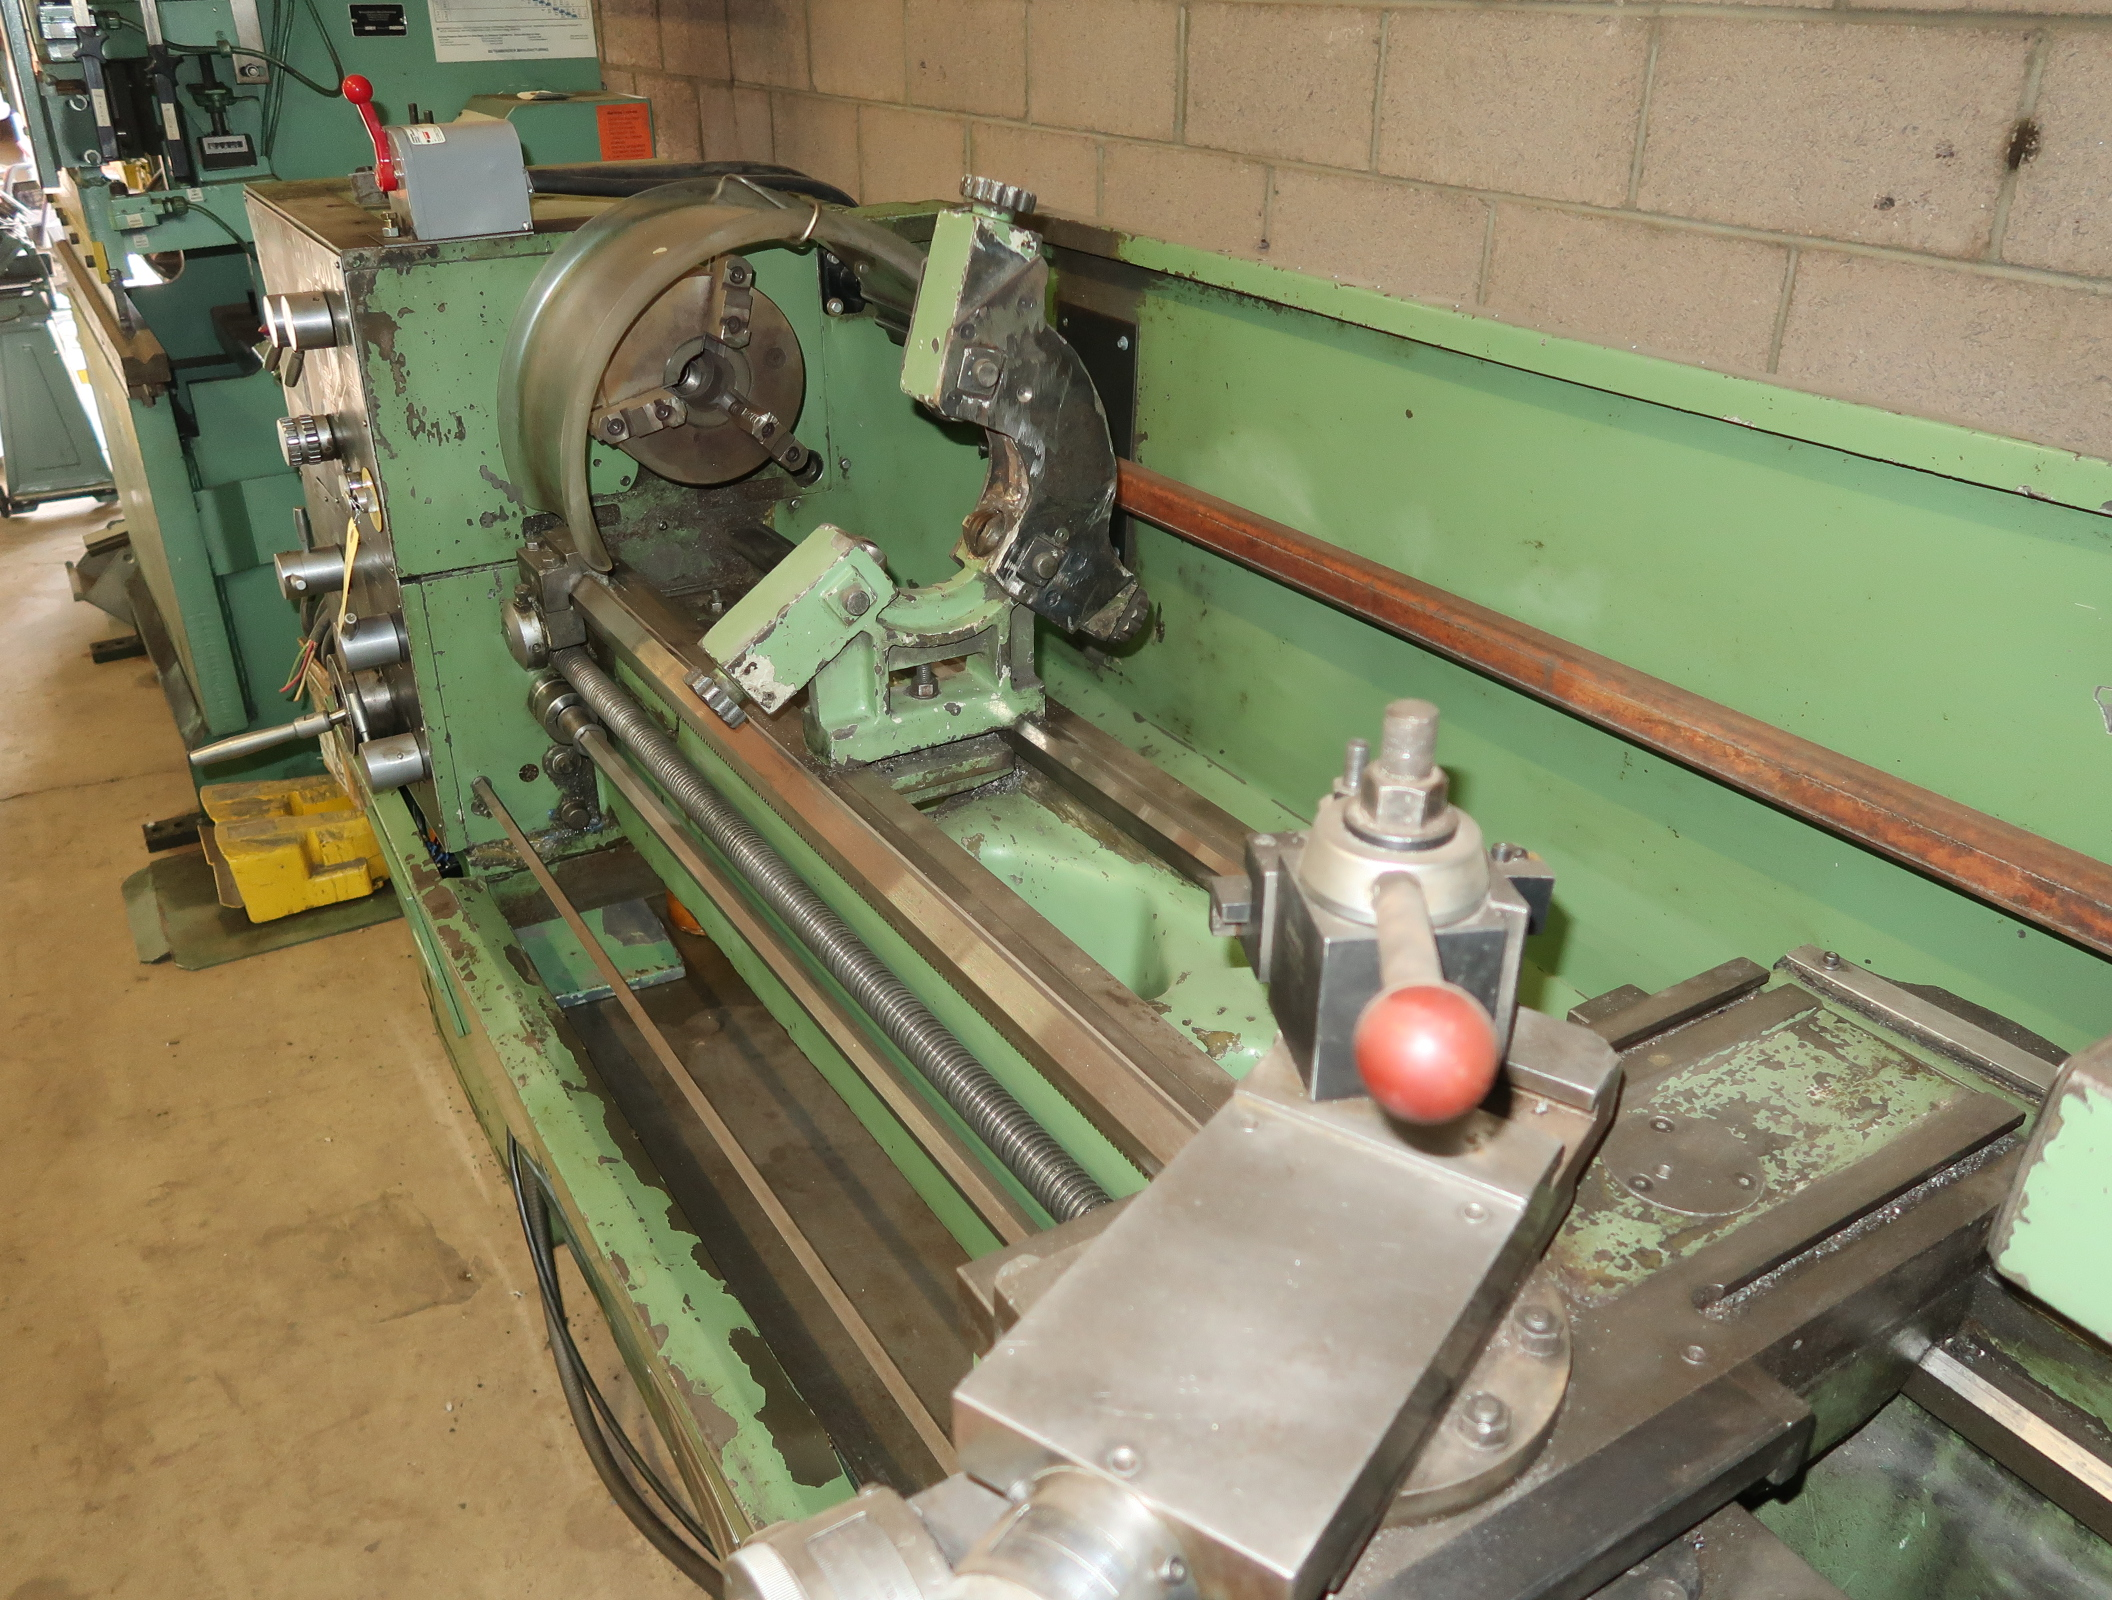 NARDINI-ND 1560E GAP BED ENGINE LATHE W/3-JAW CHUCK, QUICK CHANGE TOOLPOST W/3-HOLDERS, 5C COLLET - Image 2 of 6